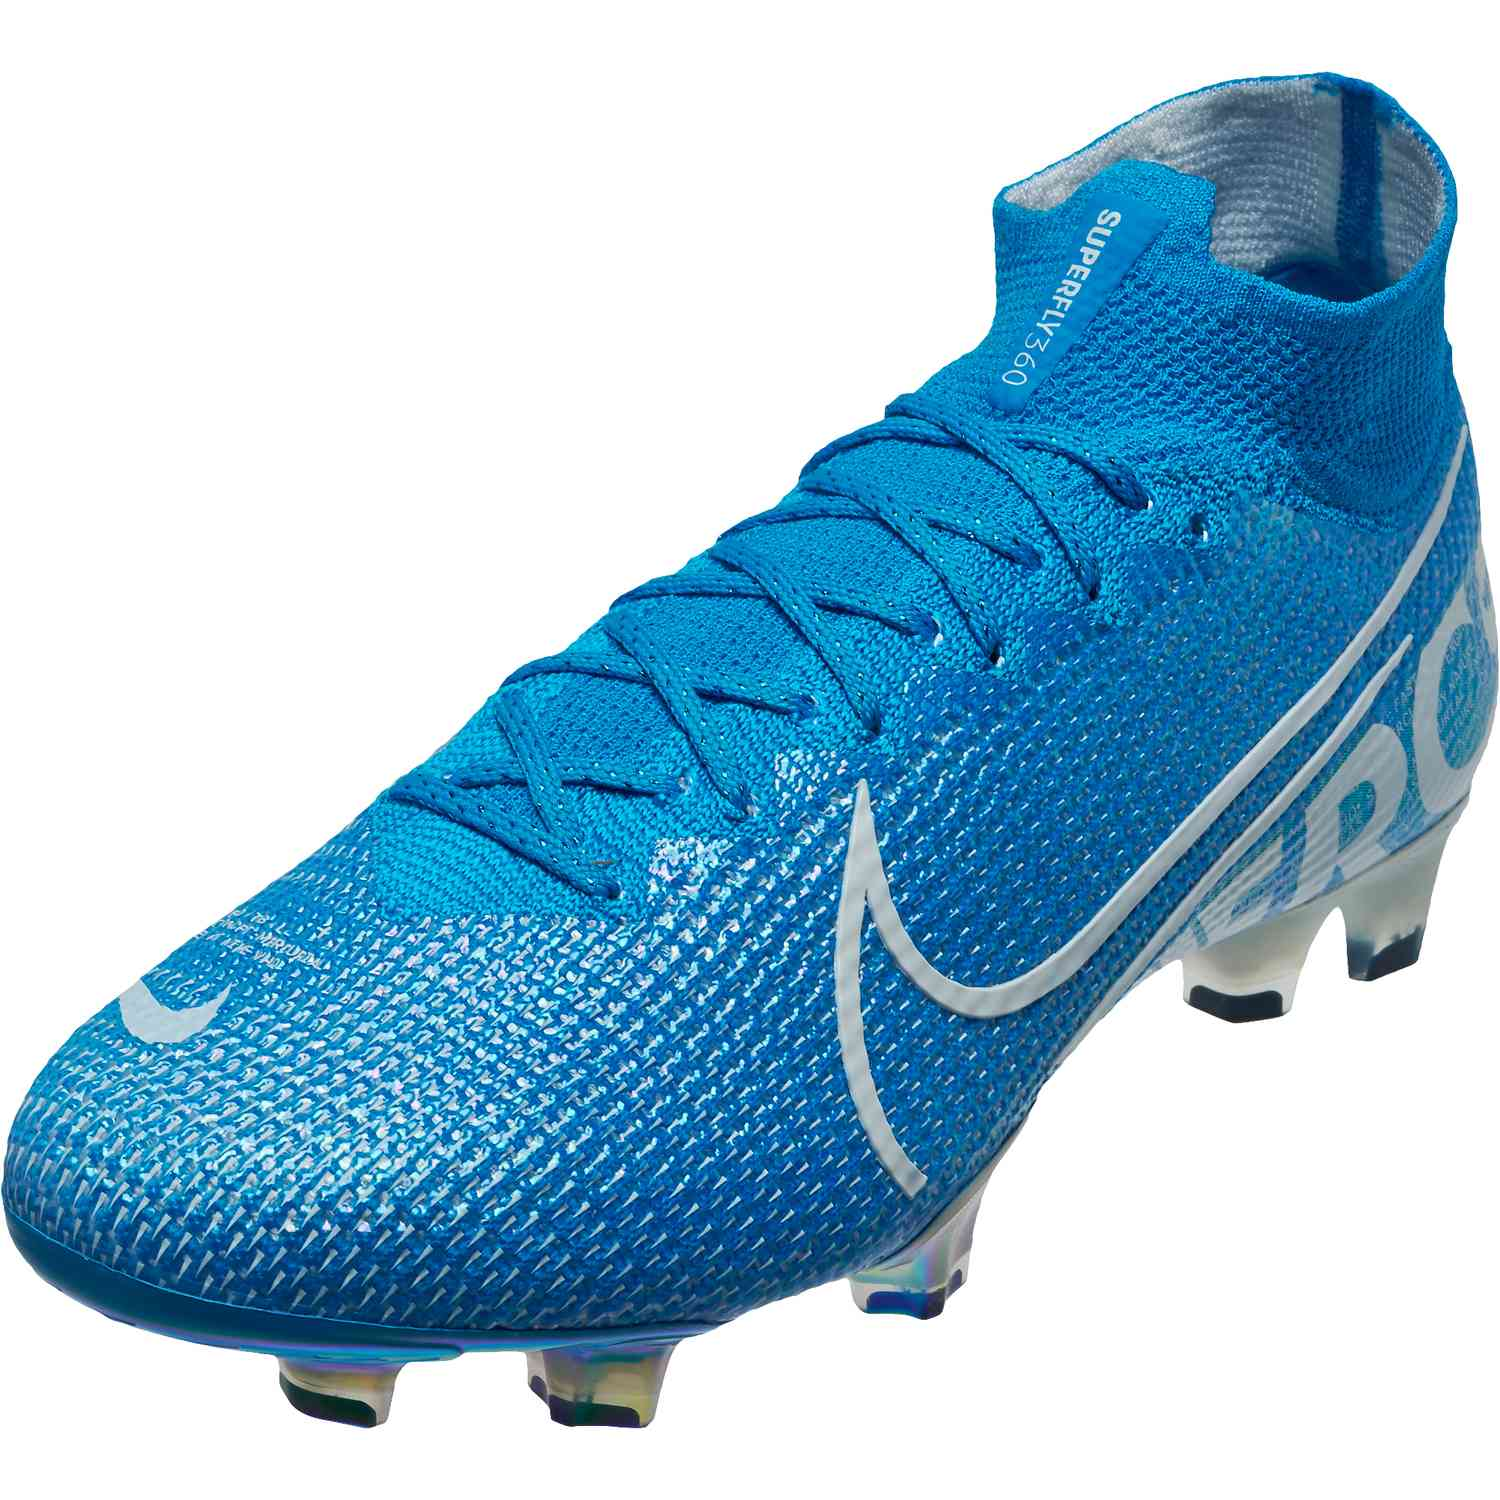 new style 7276a 0ce54 Nike Mercurial Superfly 7 Elite FG - New Lights